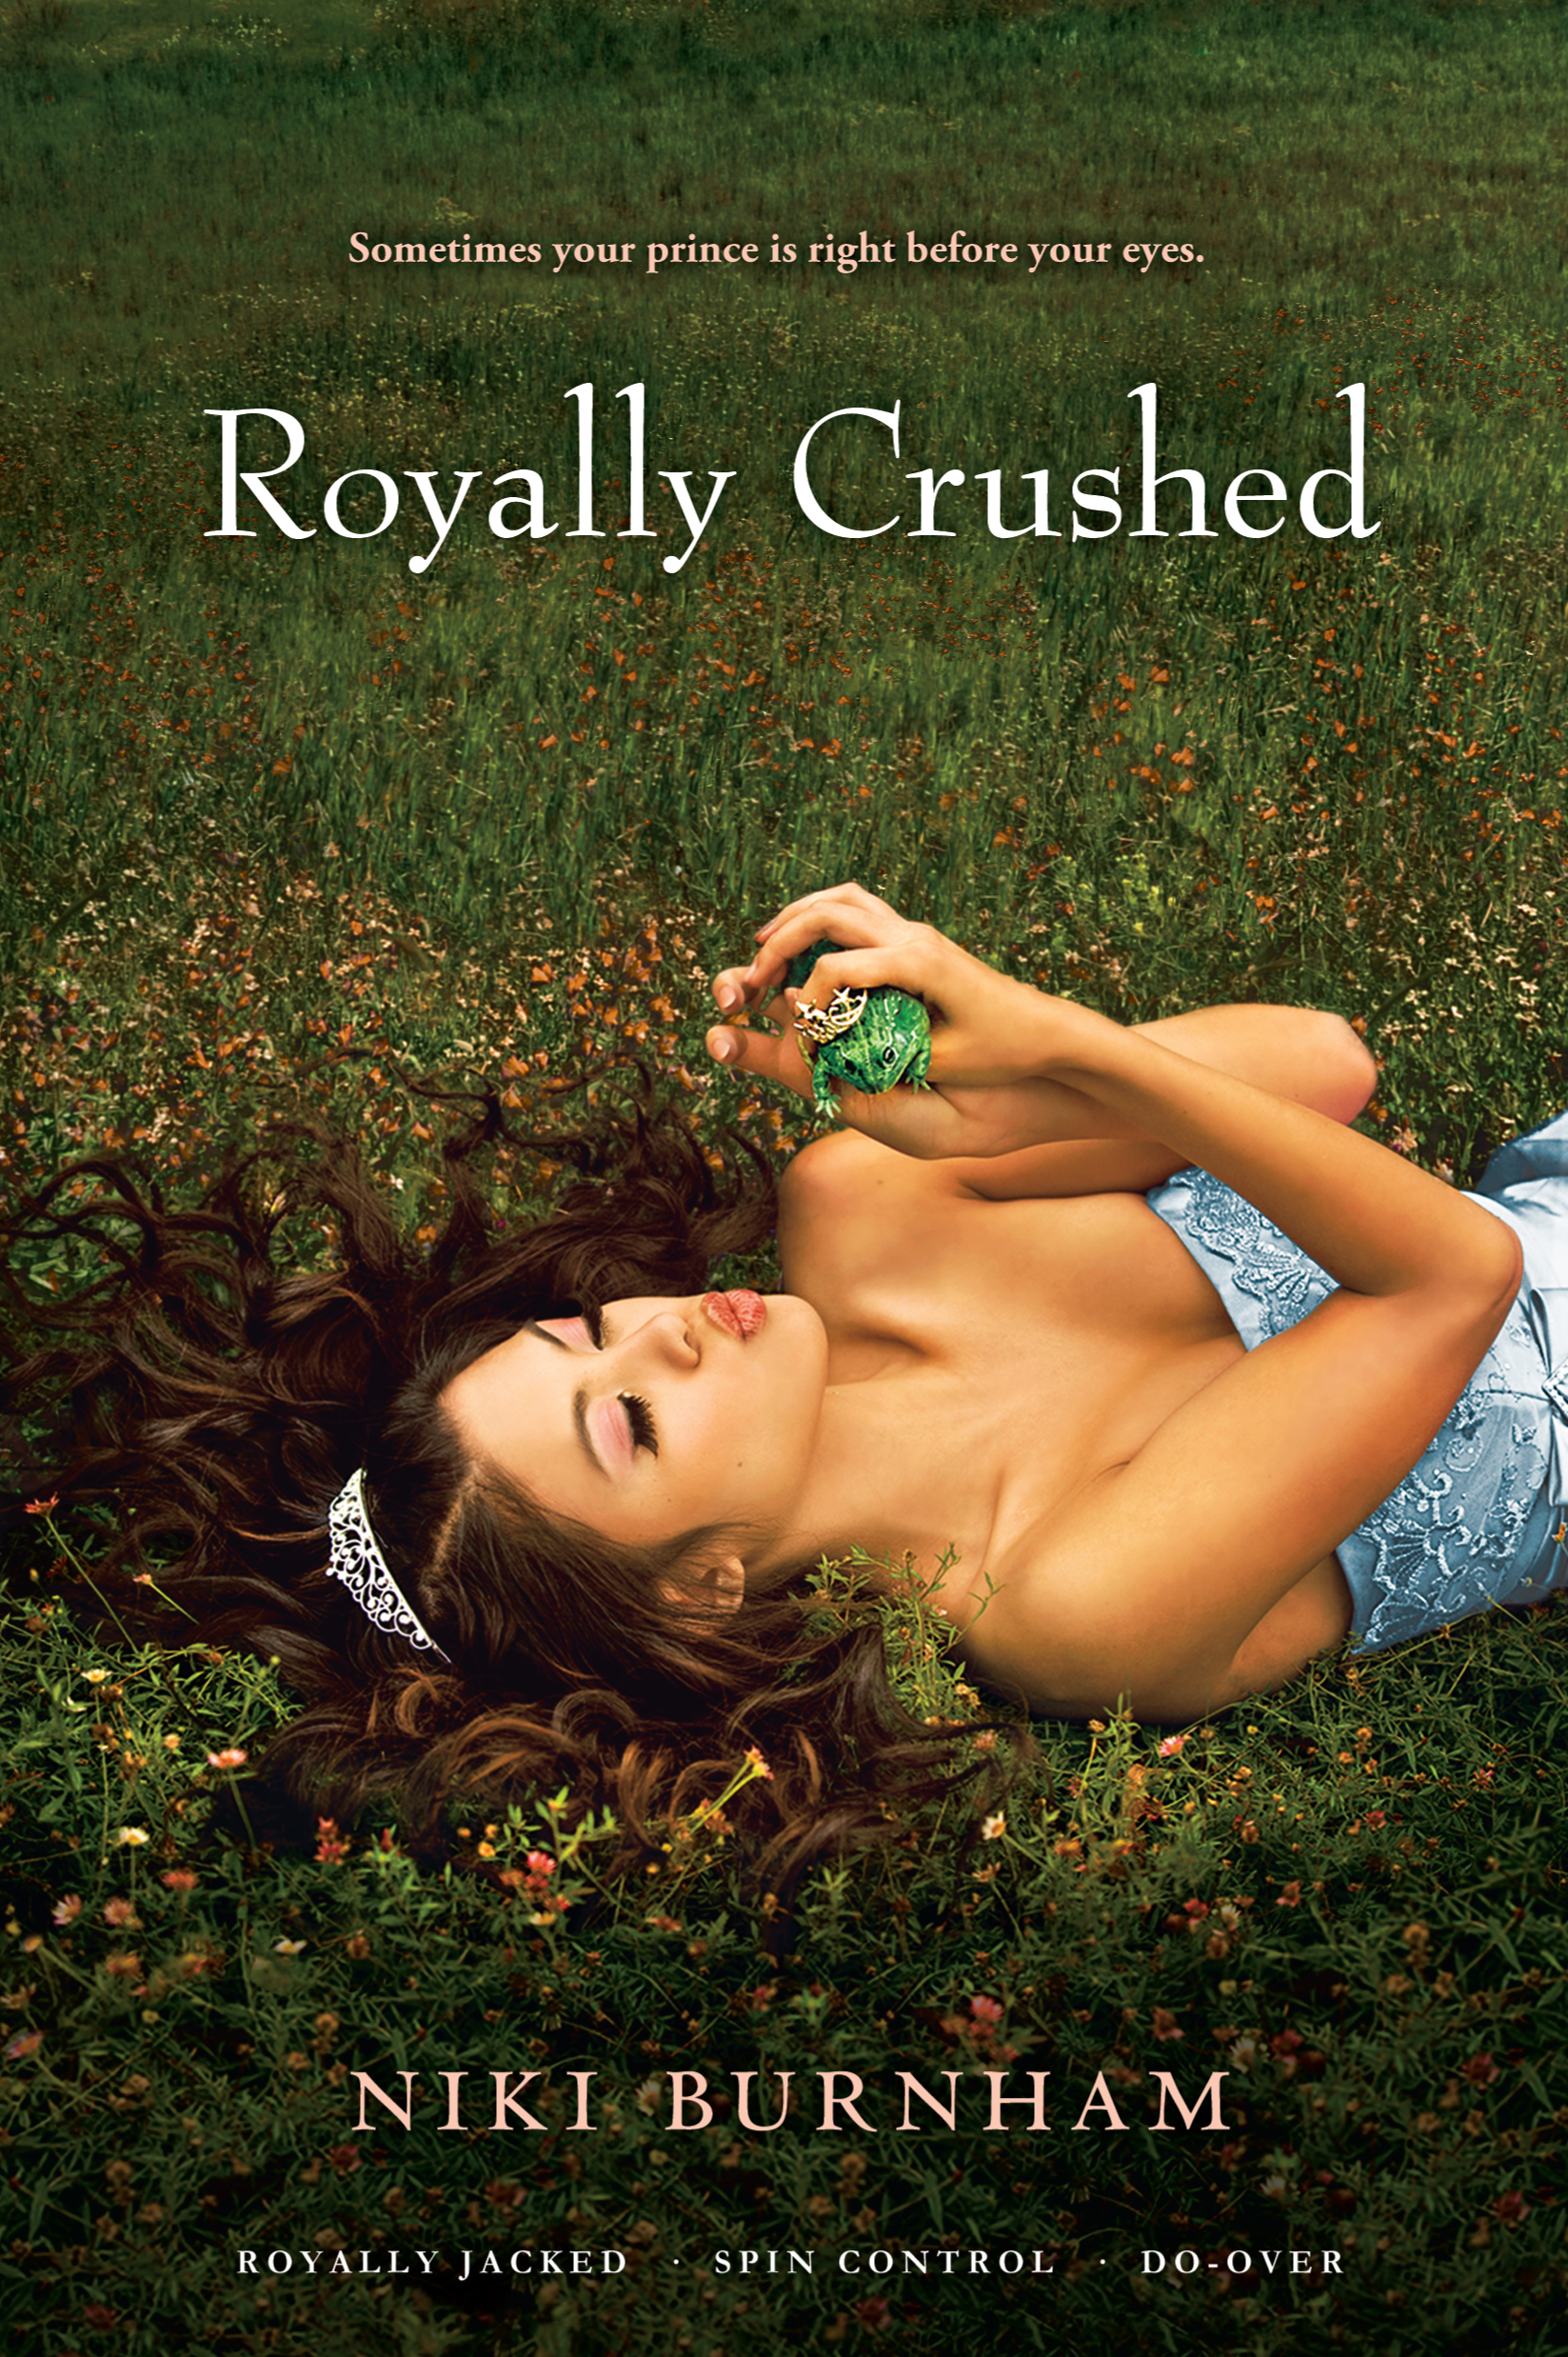 royally jacked by niki burnham pdf share term papers Niki burnham valerie's life is pretty good while she's not the most popular girl in school, she does have decent grades, great friends, and a potential boyfriend.